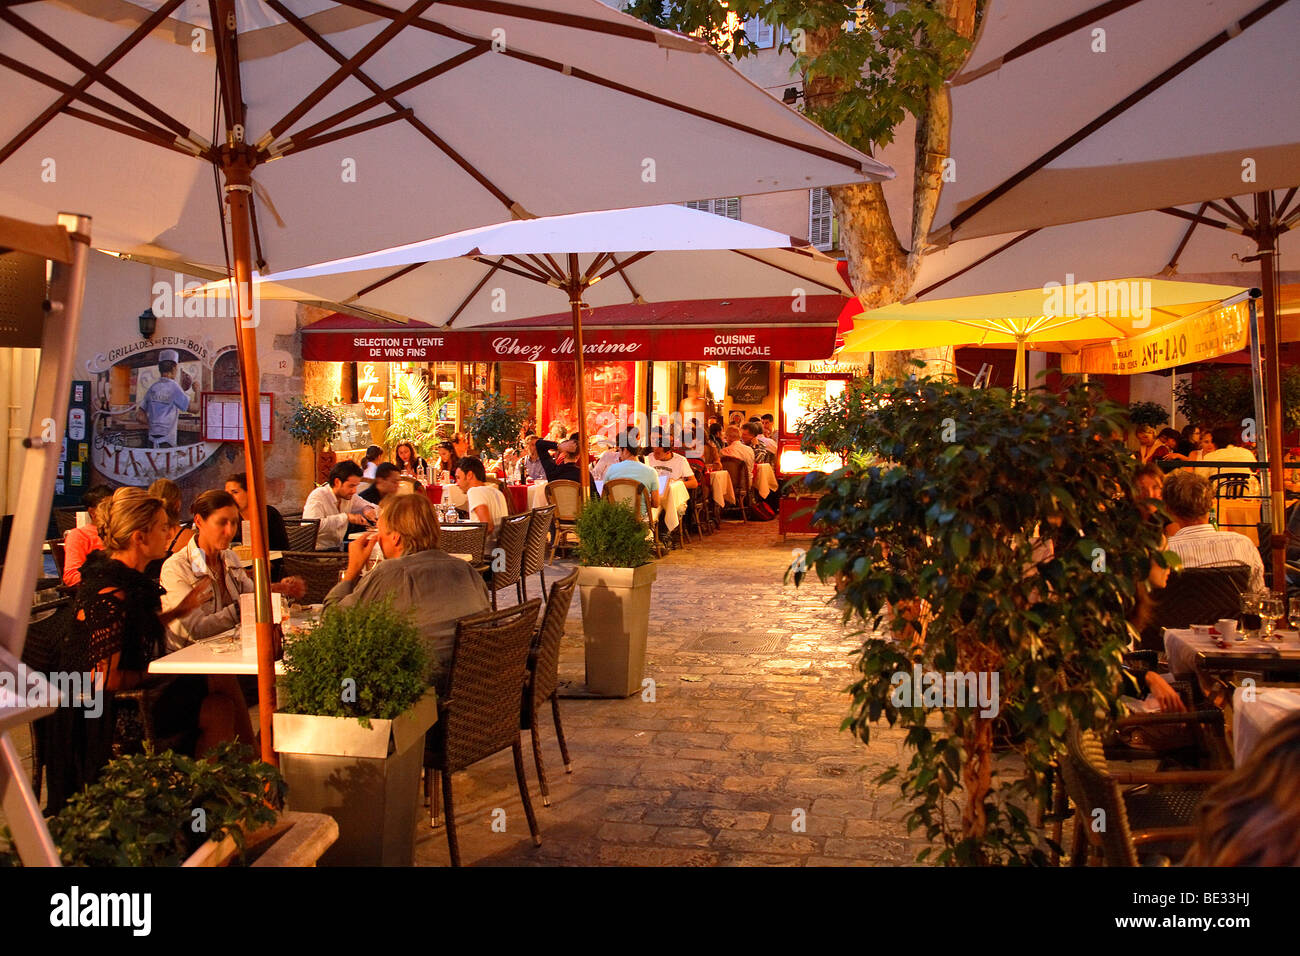 CITY OF AIX EN PROVENCE, BOUCHES DU RHONE, FRANCE - Stock Image